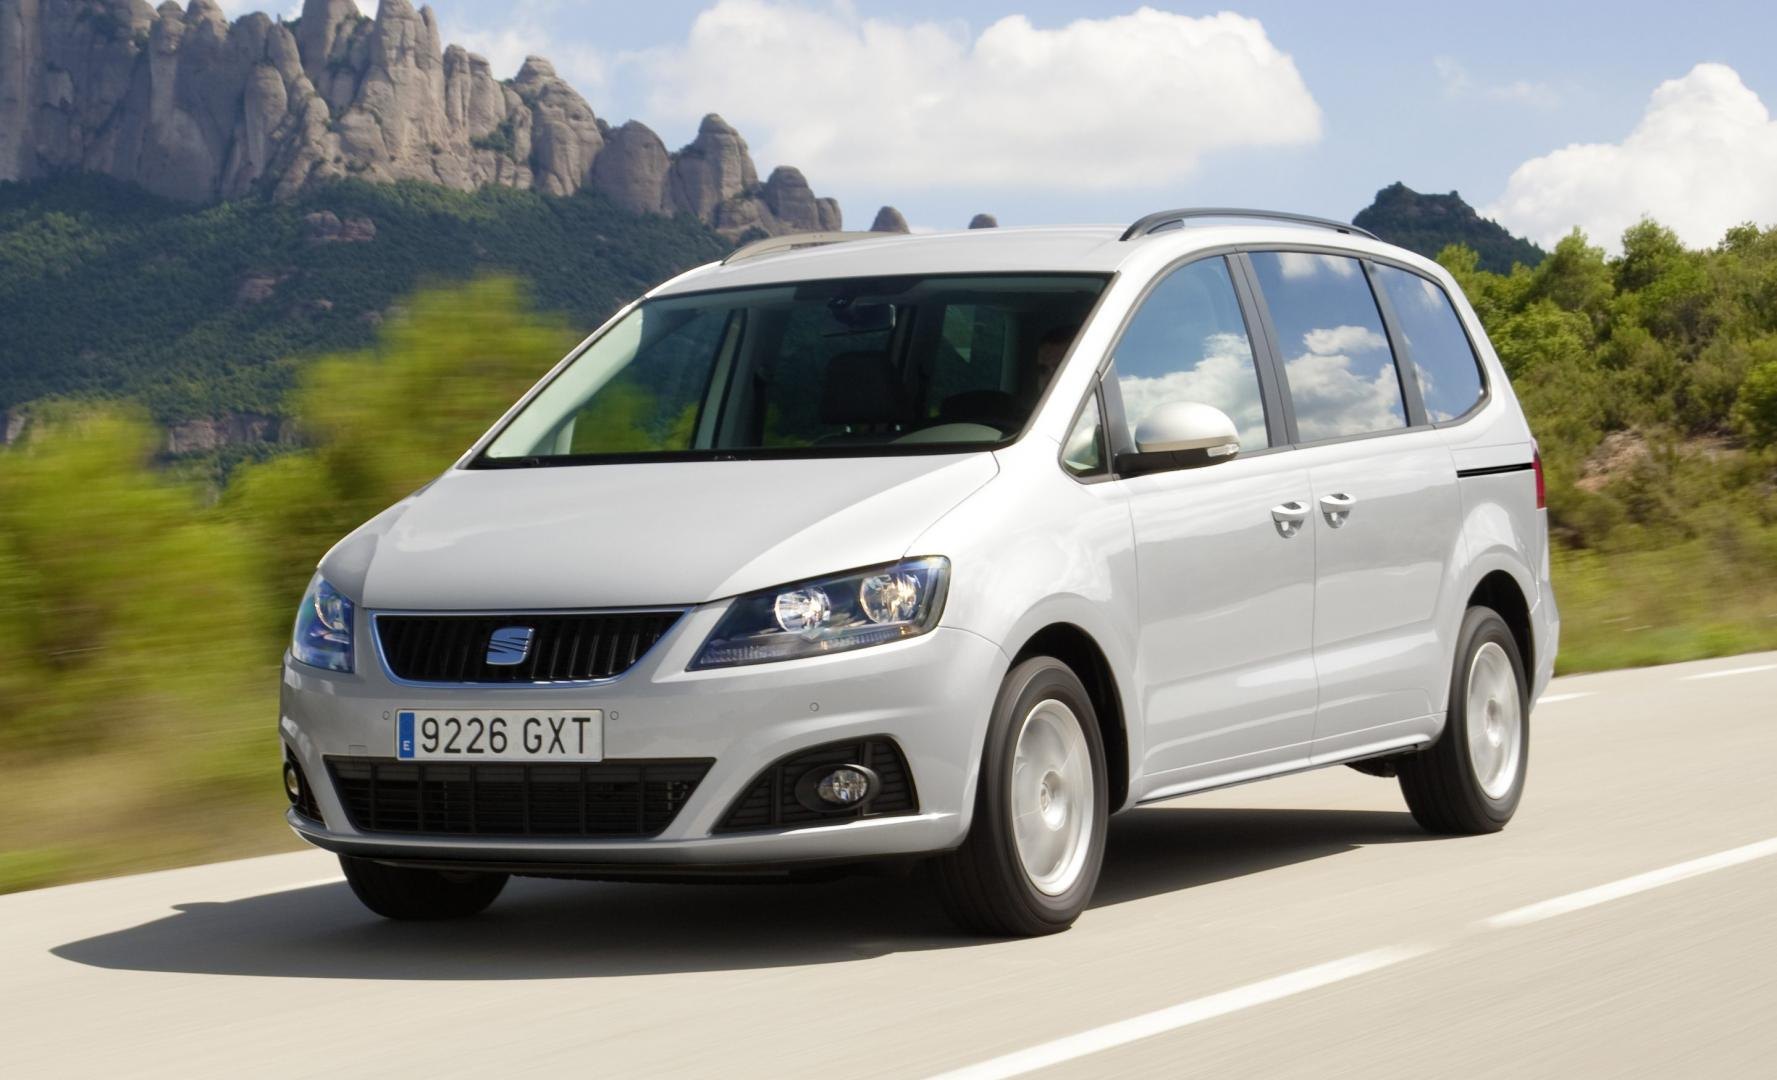 seat alhambra 2 0 tsi 200 pk dsg style 2012 test en. Black Bedroom Furniture Sets. Home Design Ideas